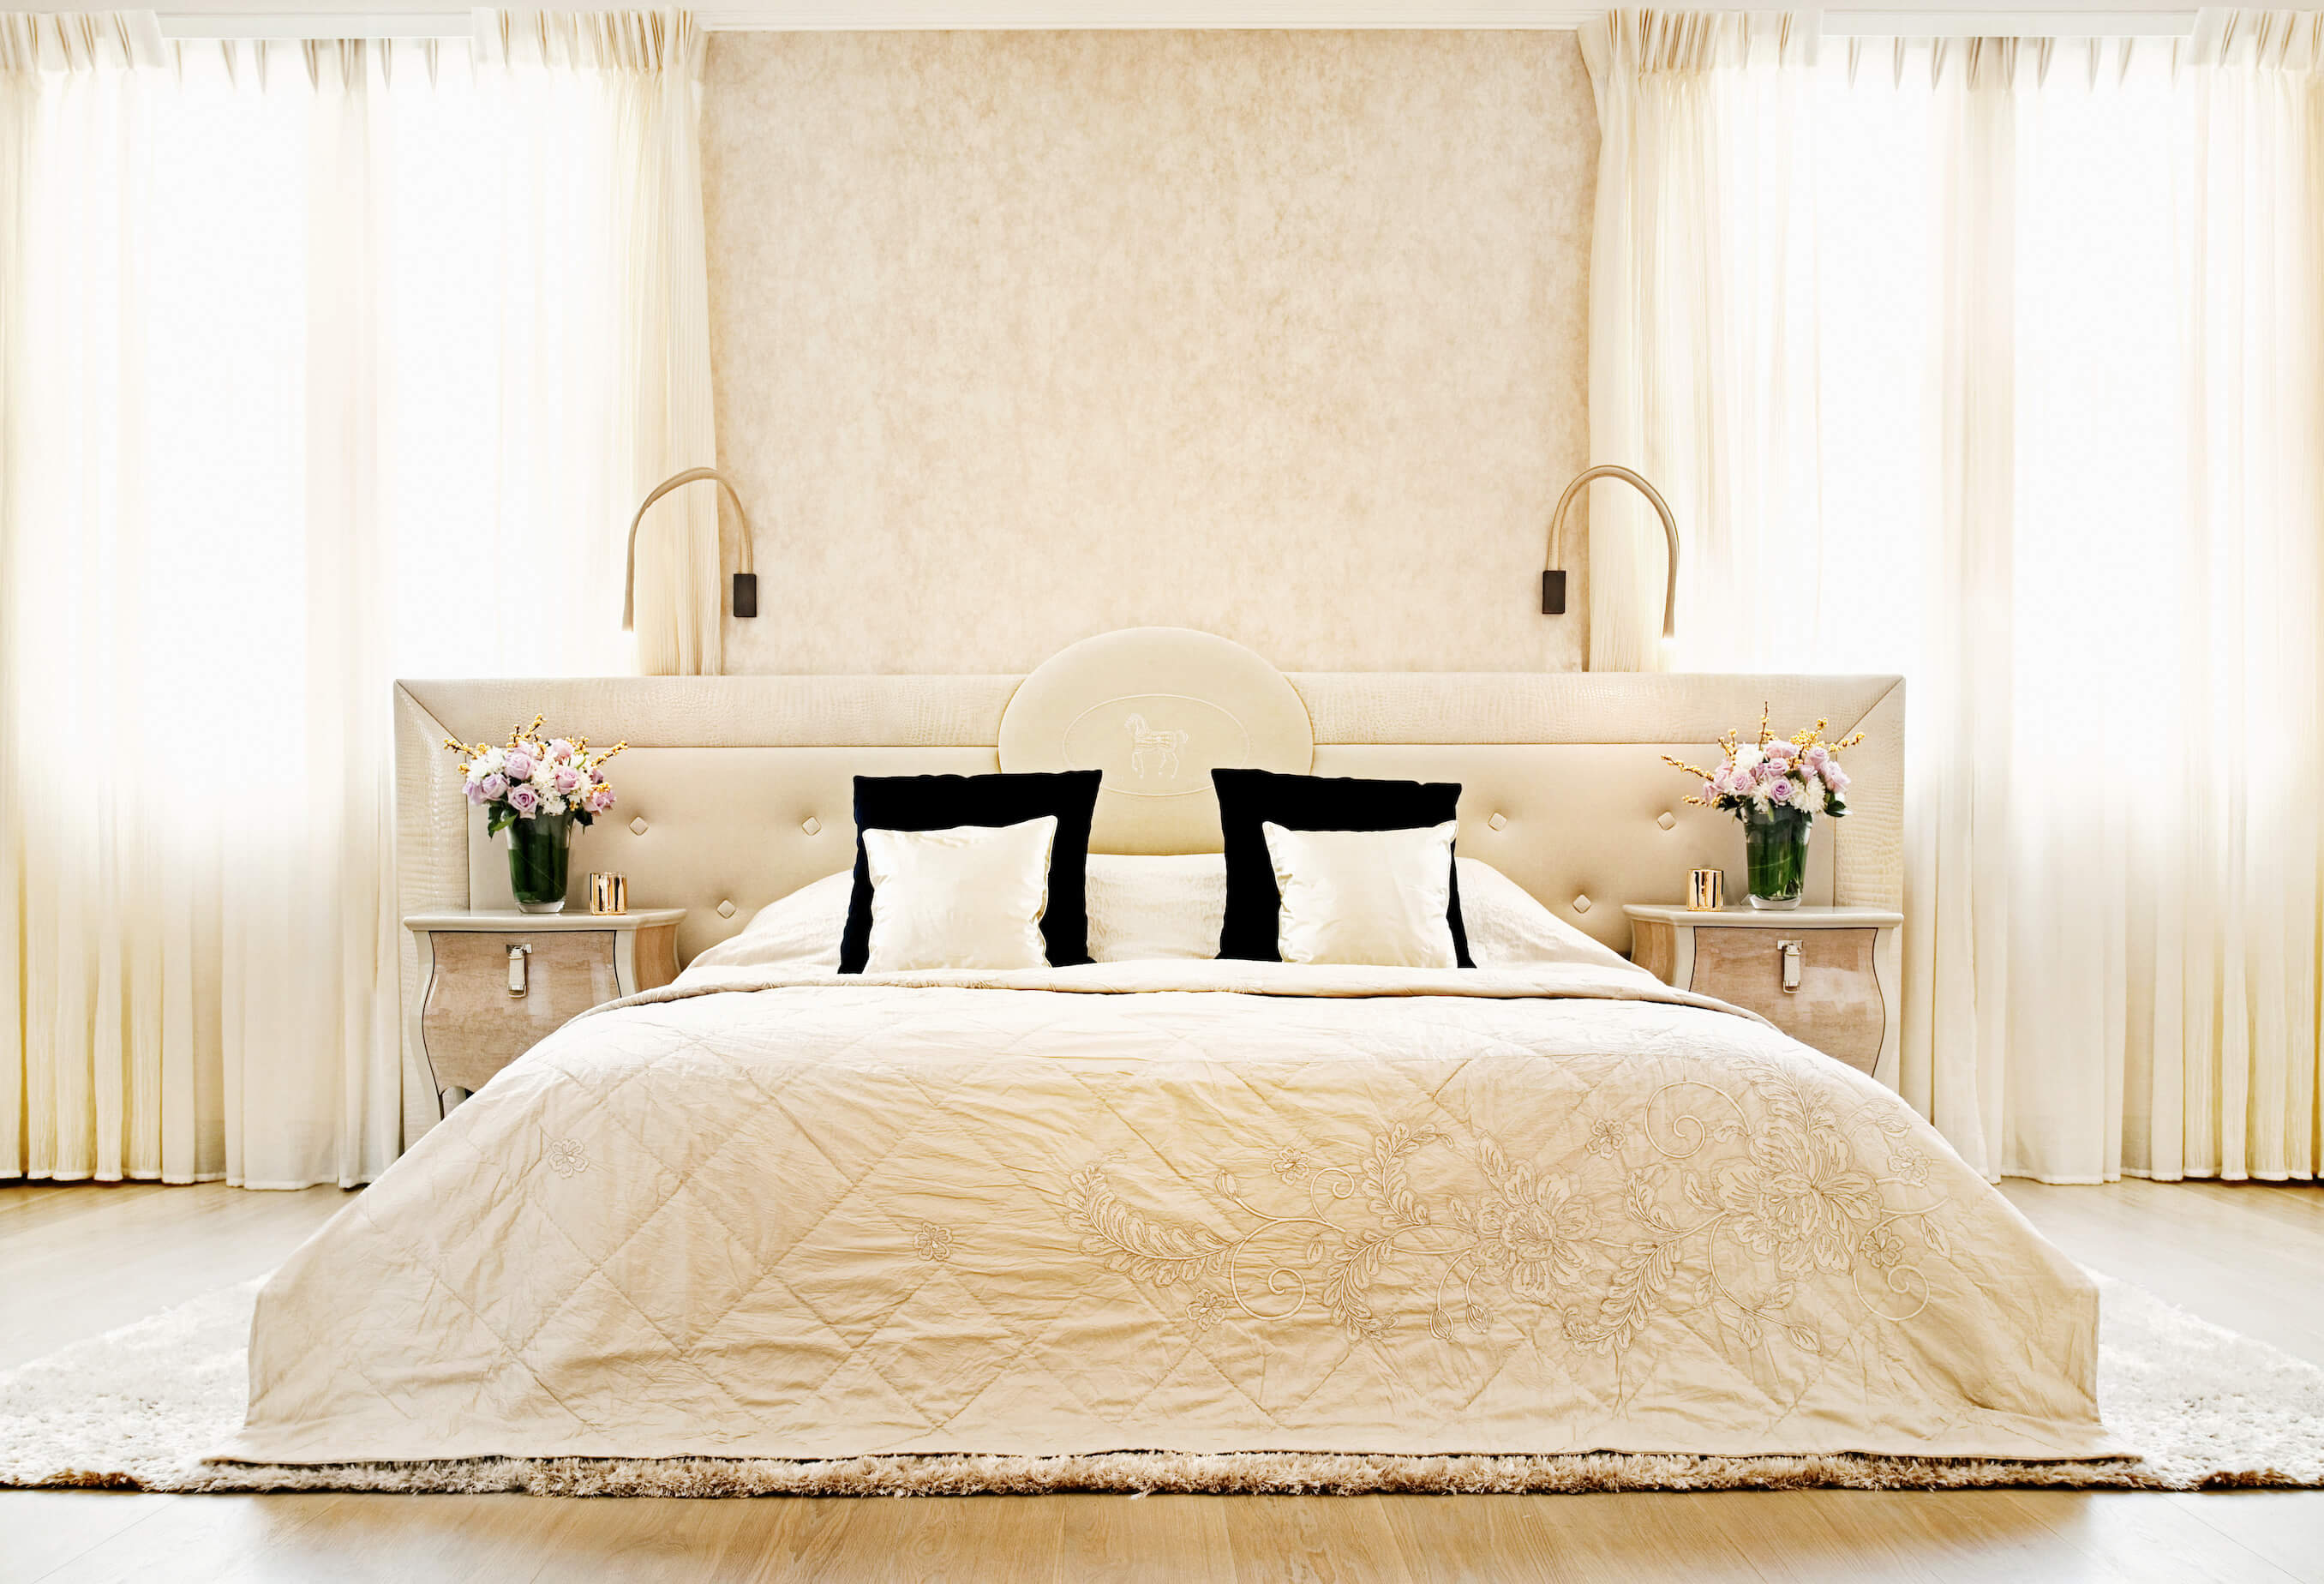 Primary bedroom suite is awash in bold cream tones, from the drapes to the large, button tufted headboard, flanked by a pair of carved wood dressers. Another thick area rug holds the furniture in this room over hardwood flooring.